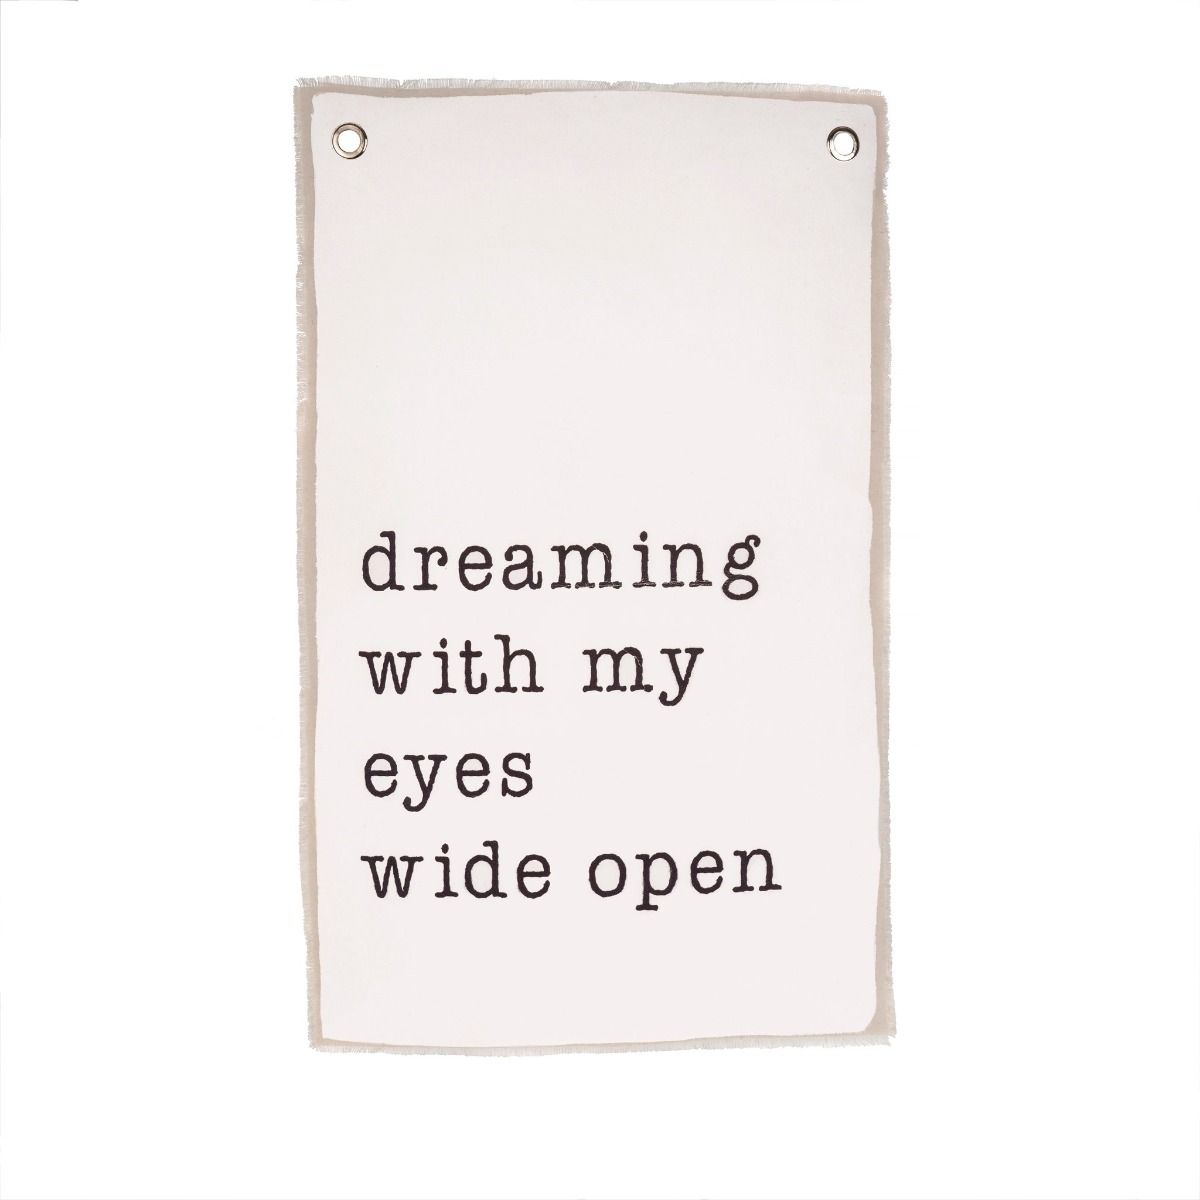 dreaming with my eyes wide open canvas wall hanging